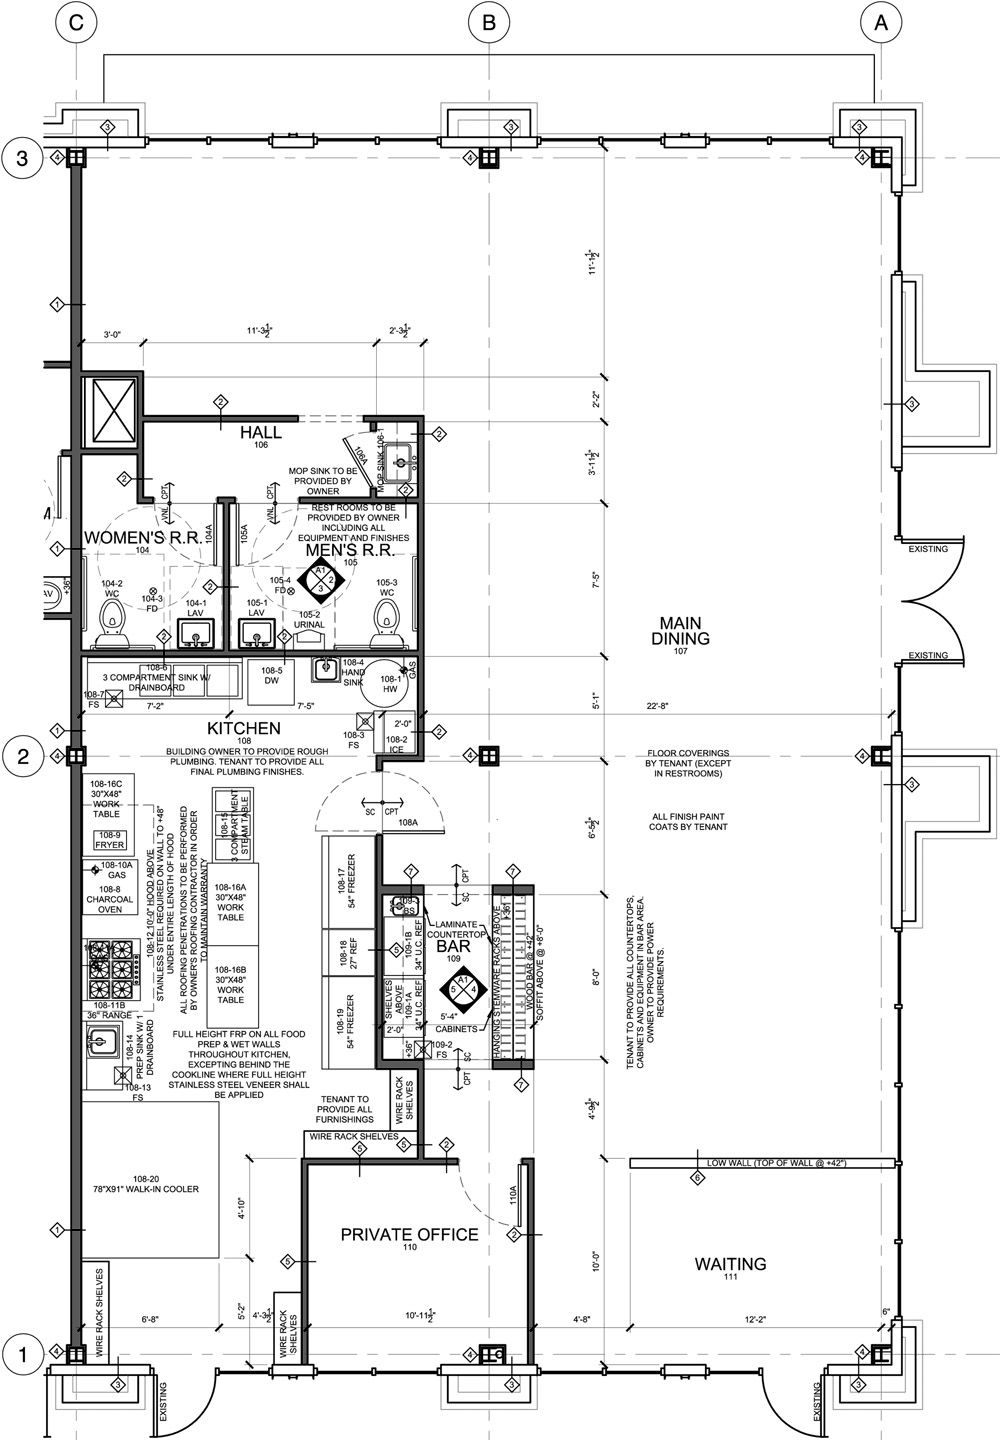 Restaurant Kitchen Layout Templates restaurant kitchen layout ideas | kitchen layout | restaurant